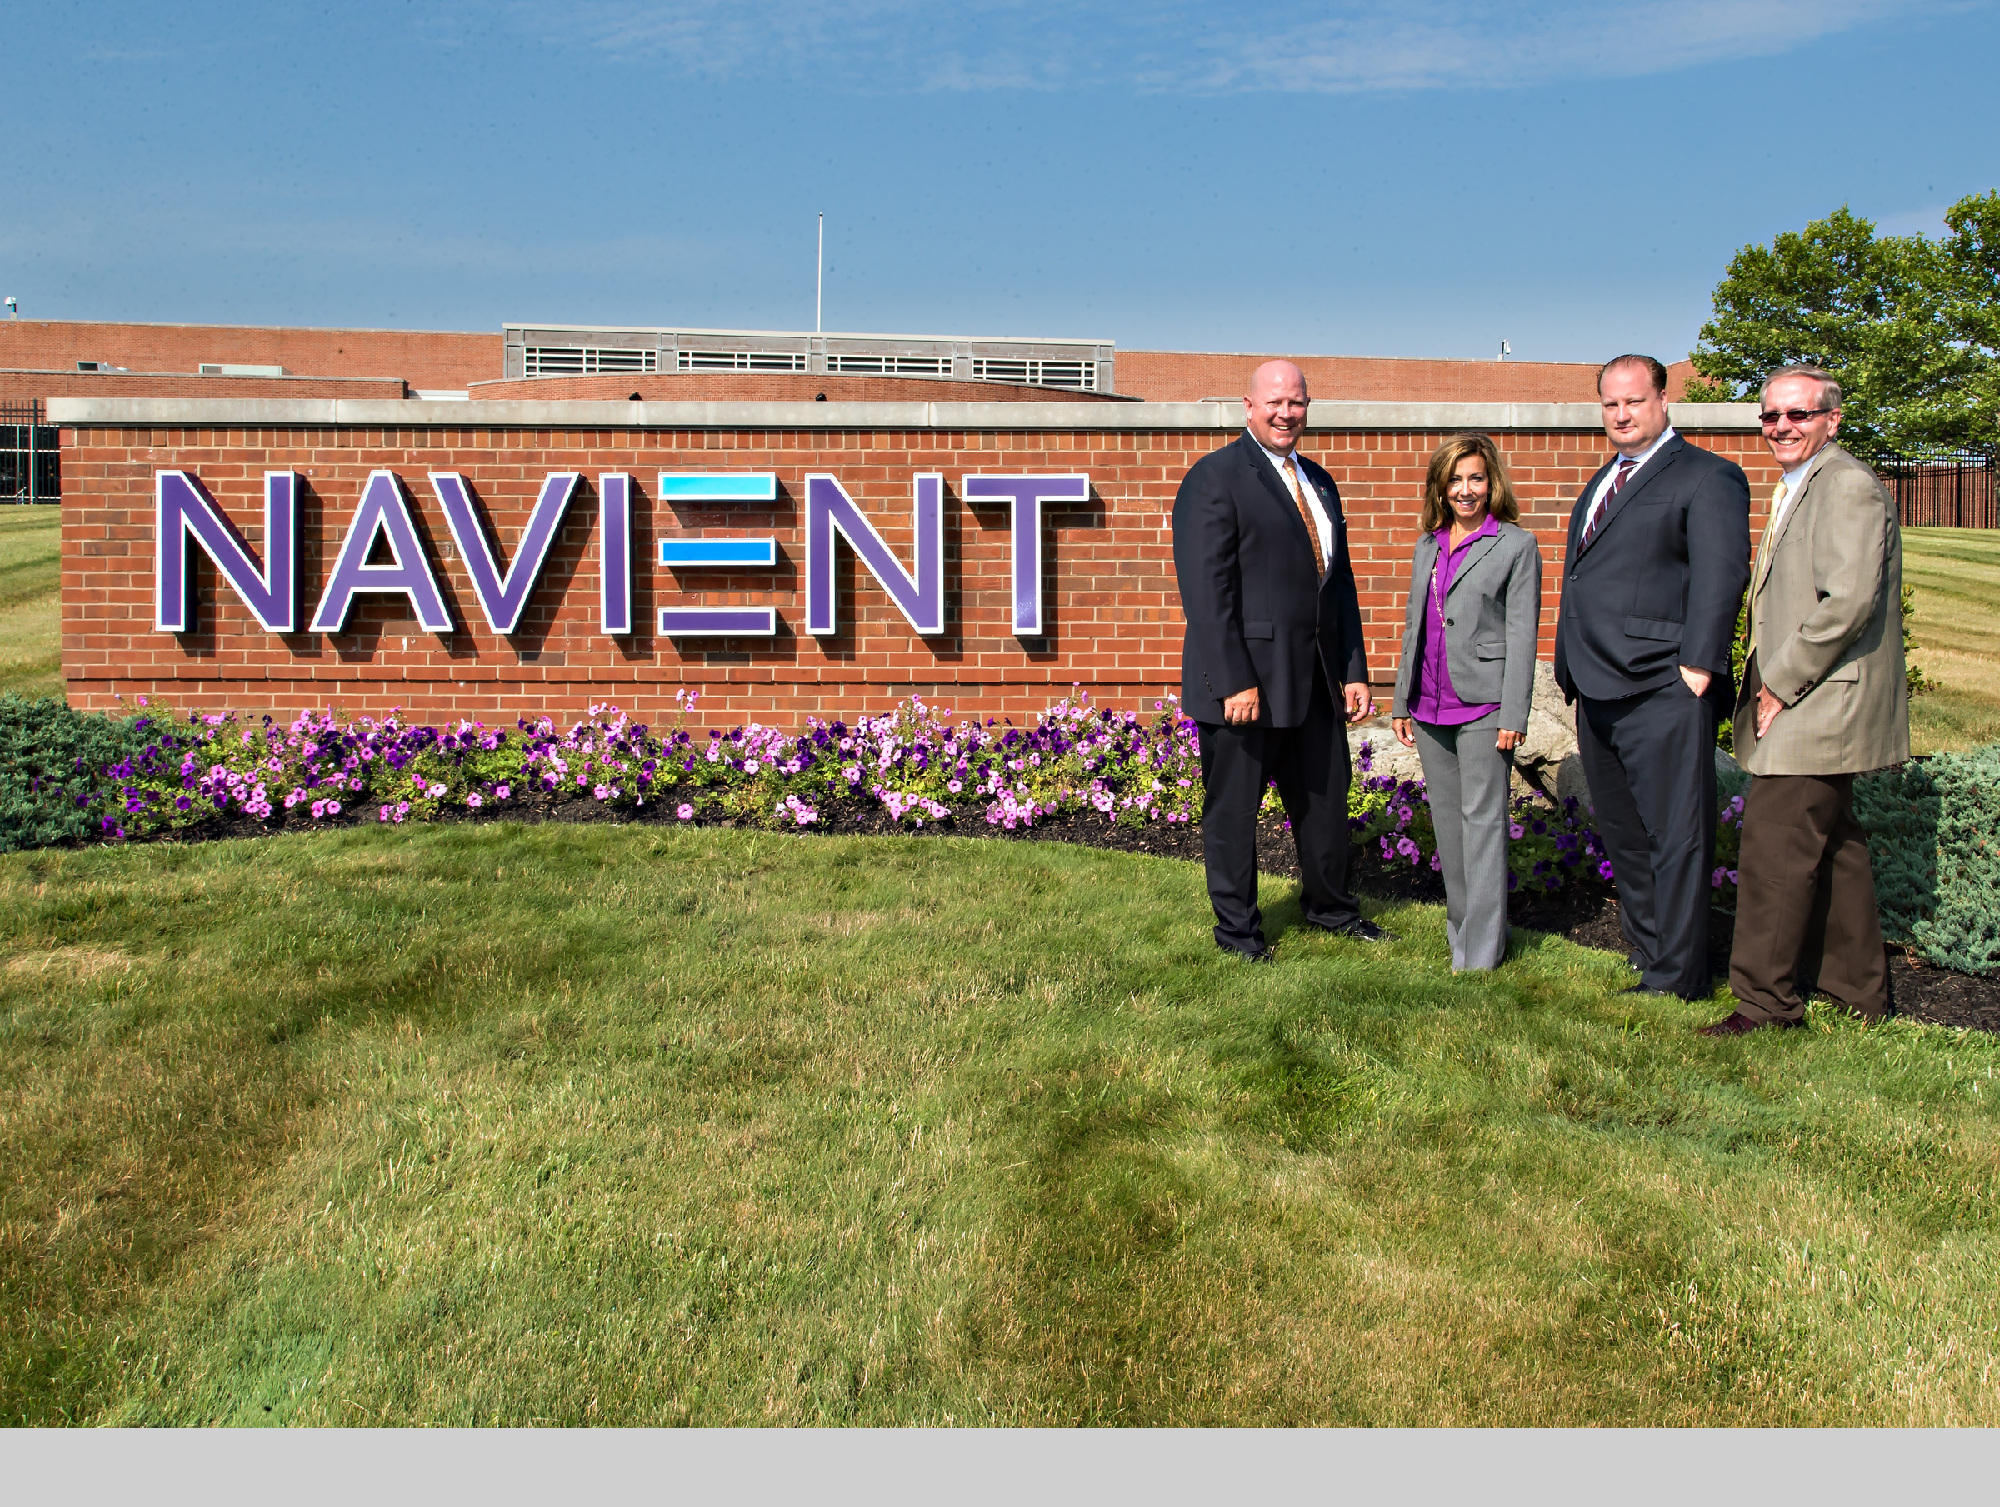 Navient Stock Crashes After Pennsylvania AG Sues On Abuse Claims